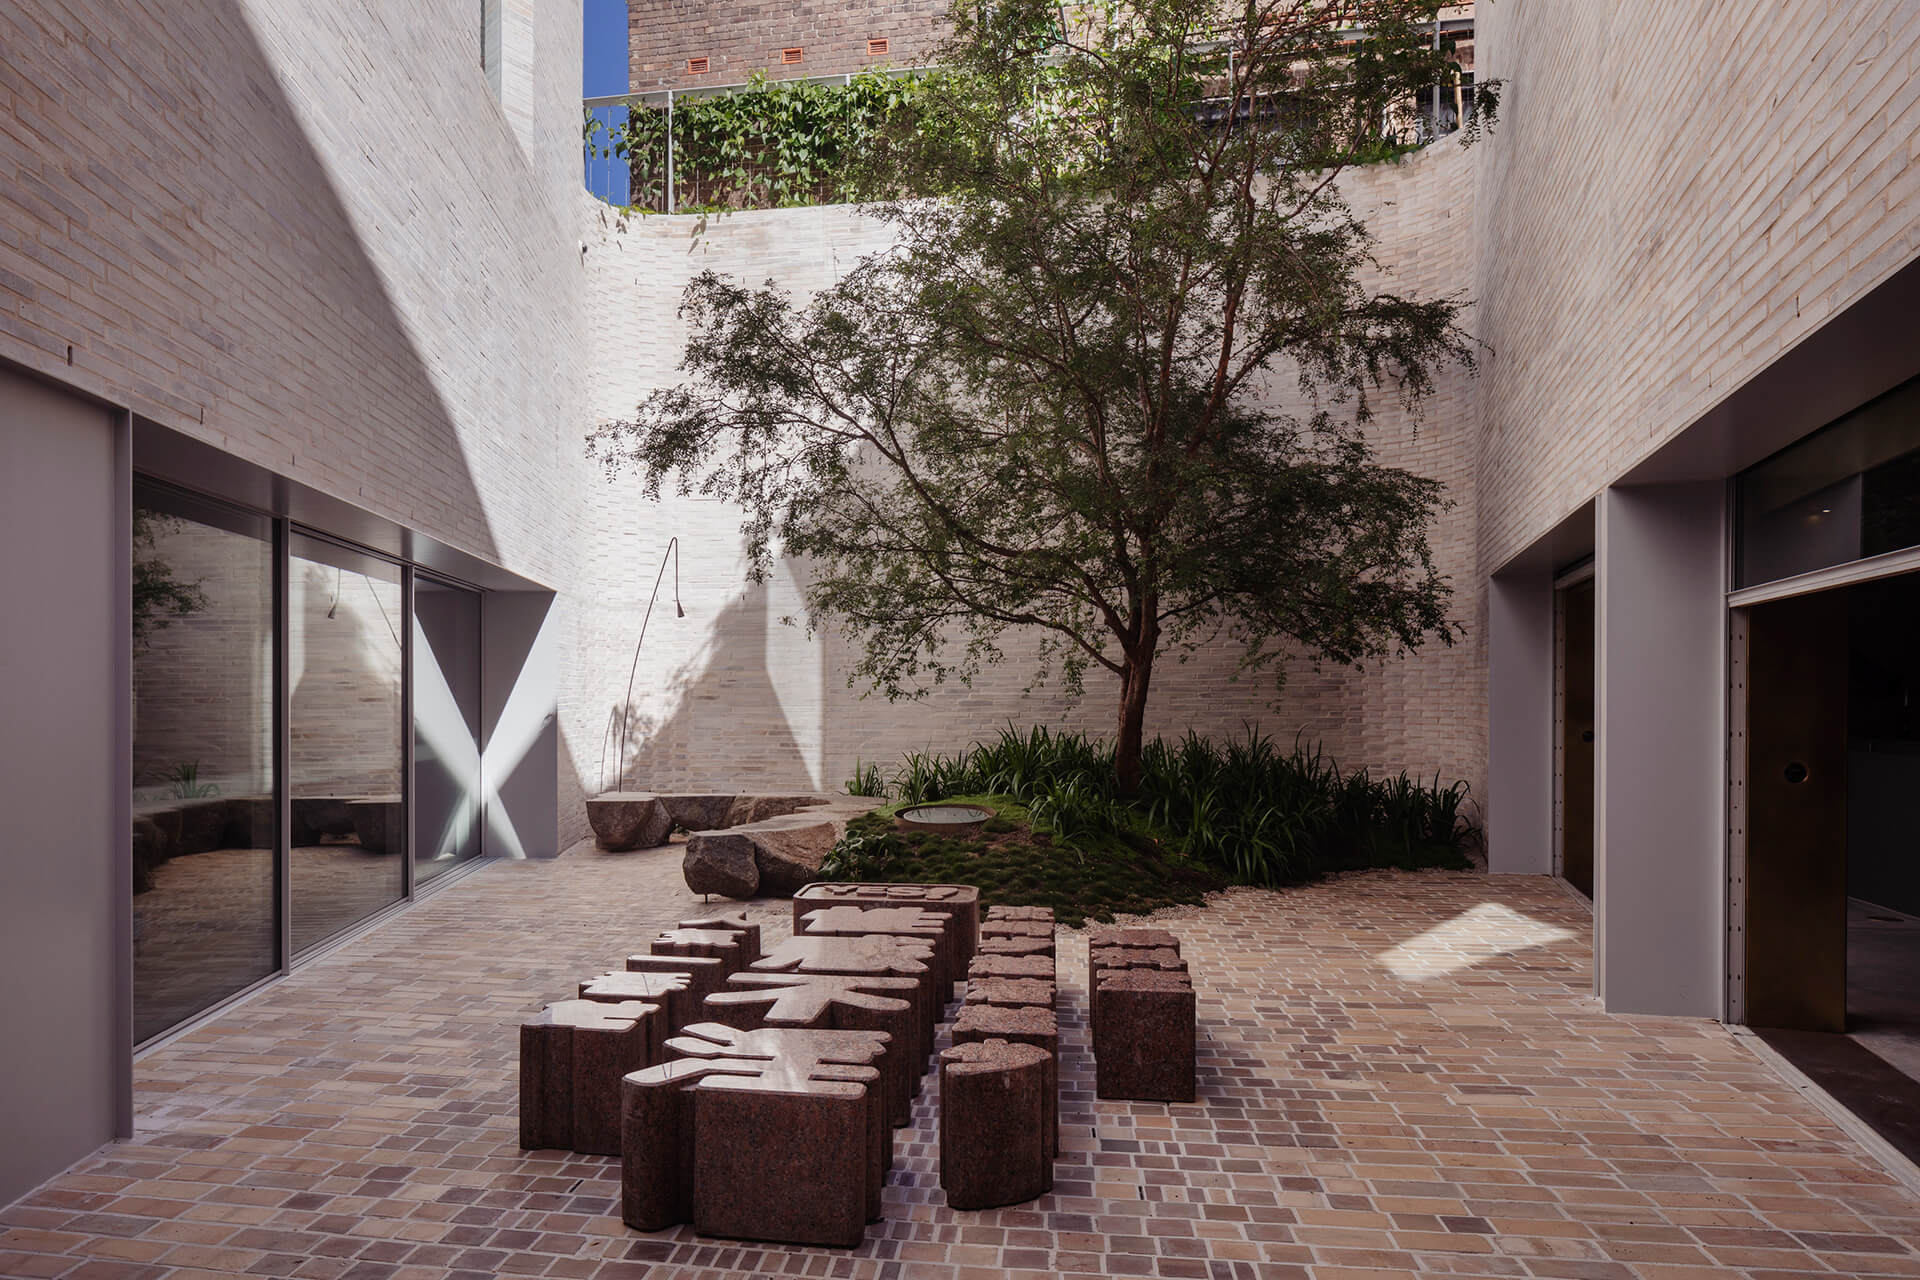 The courtyard that separates the two spaces | Phoenix Central park | Durbach Block Jaggers and John Wardle Architects | STIRworld